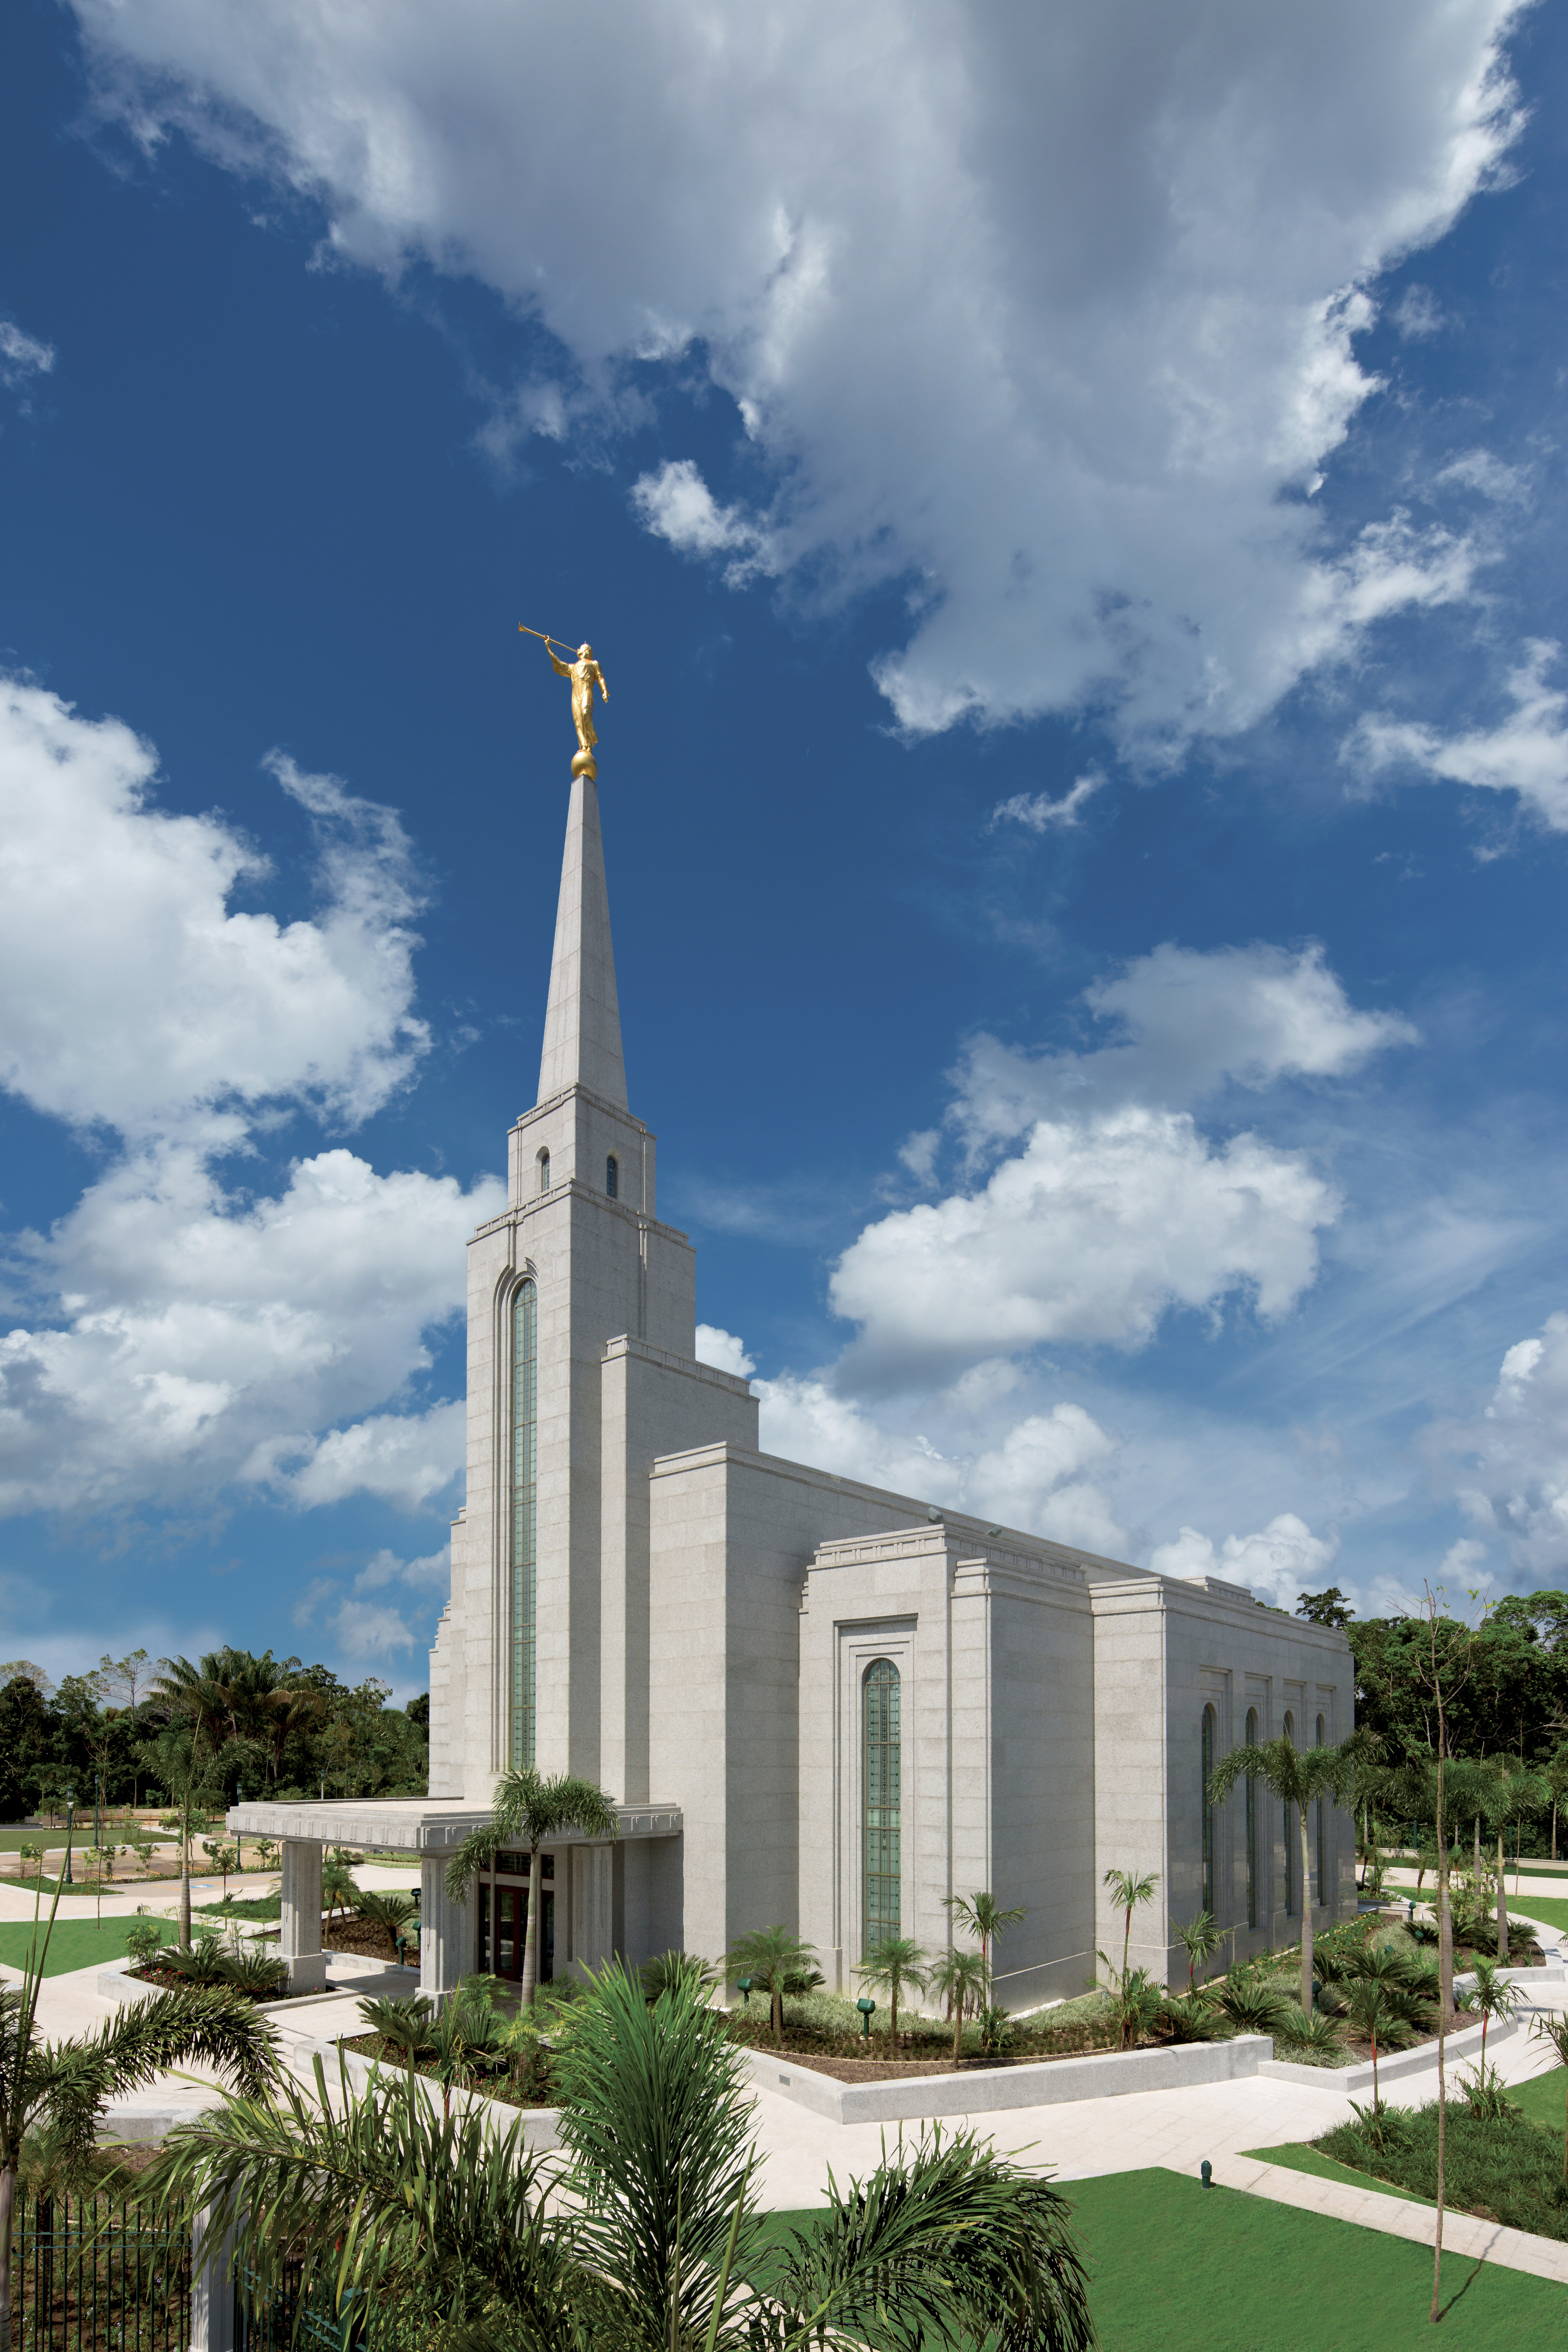 The Manaus Brazil Temple, including the entrance and scenery.